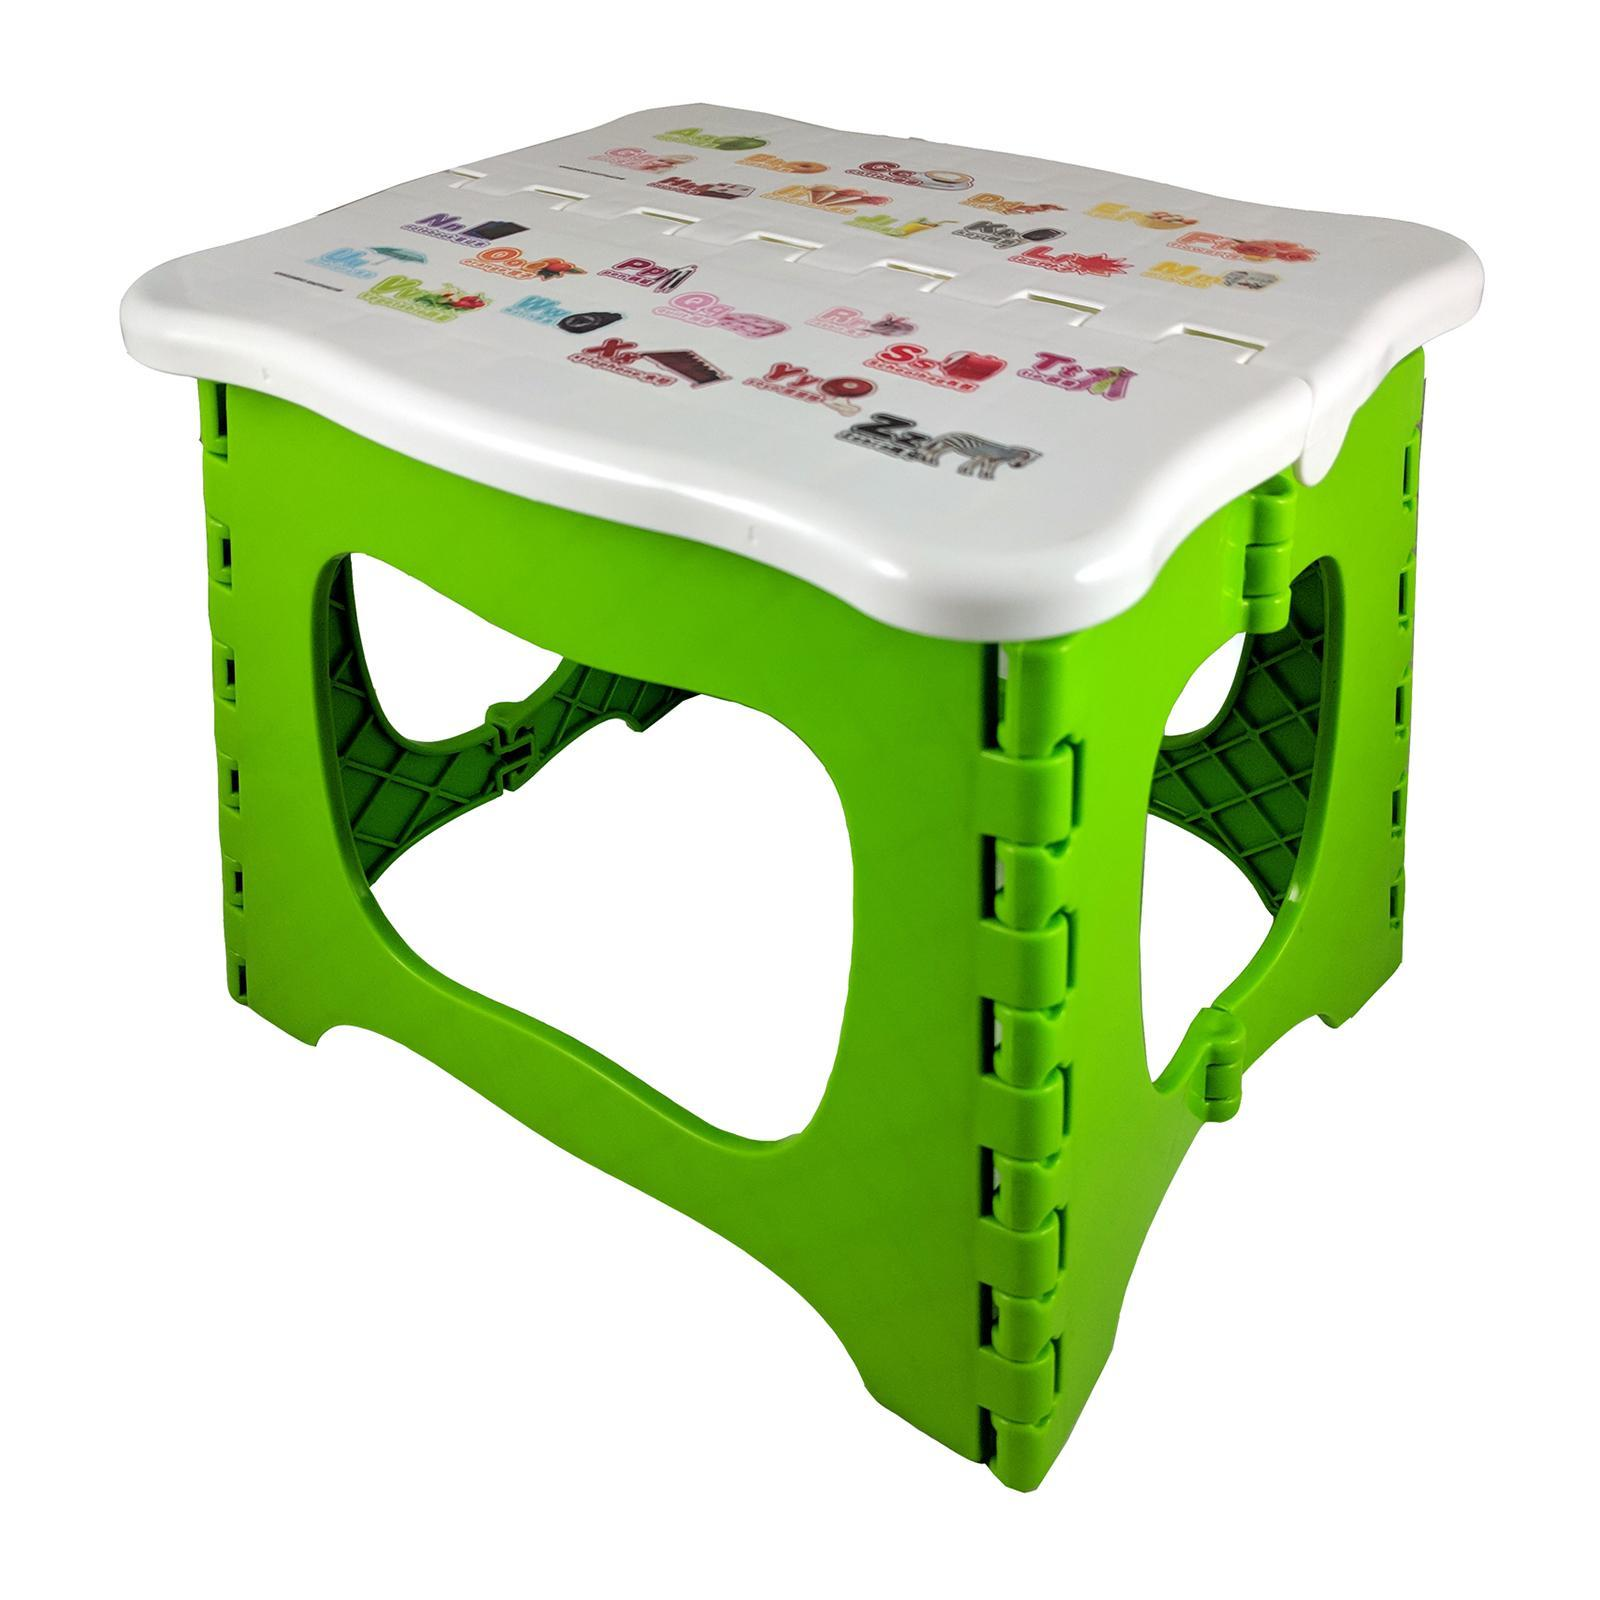 KangjiaBao Little Genius Plastic Foldable Stool 23 Cm (Green)